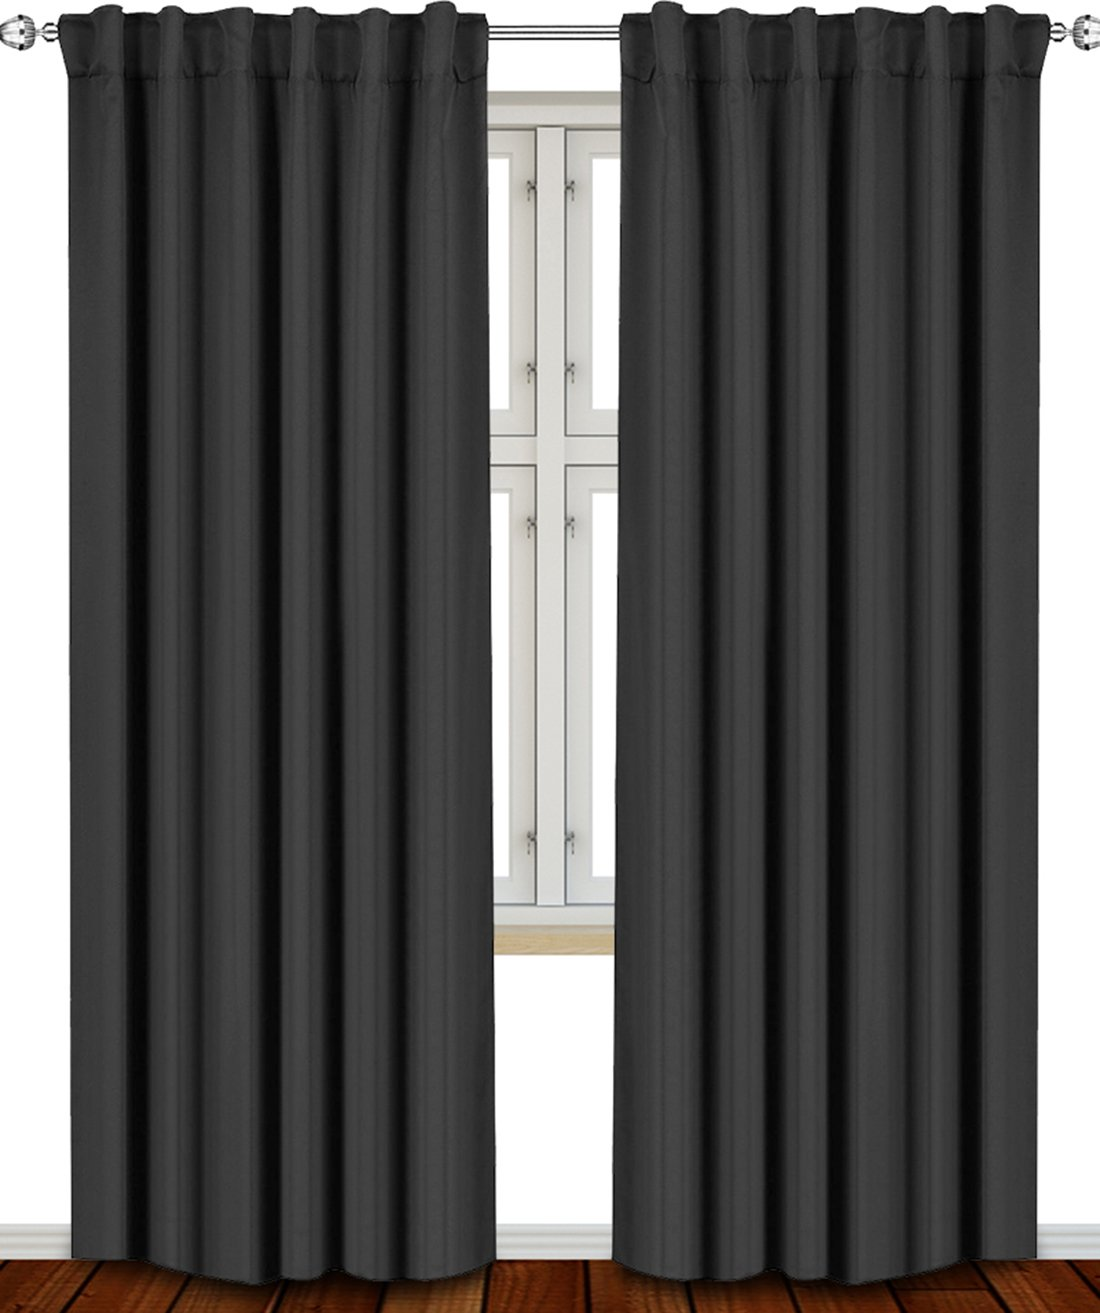 Utopia Bedding - Blackout Room Darkening and Thermal Insulating Window Curtains